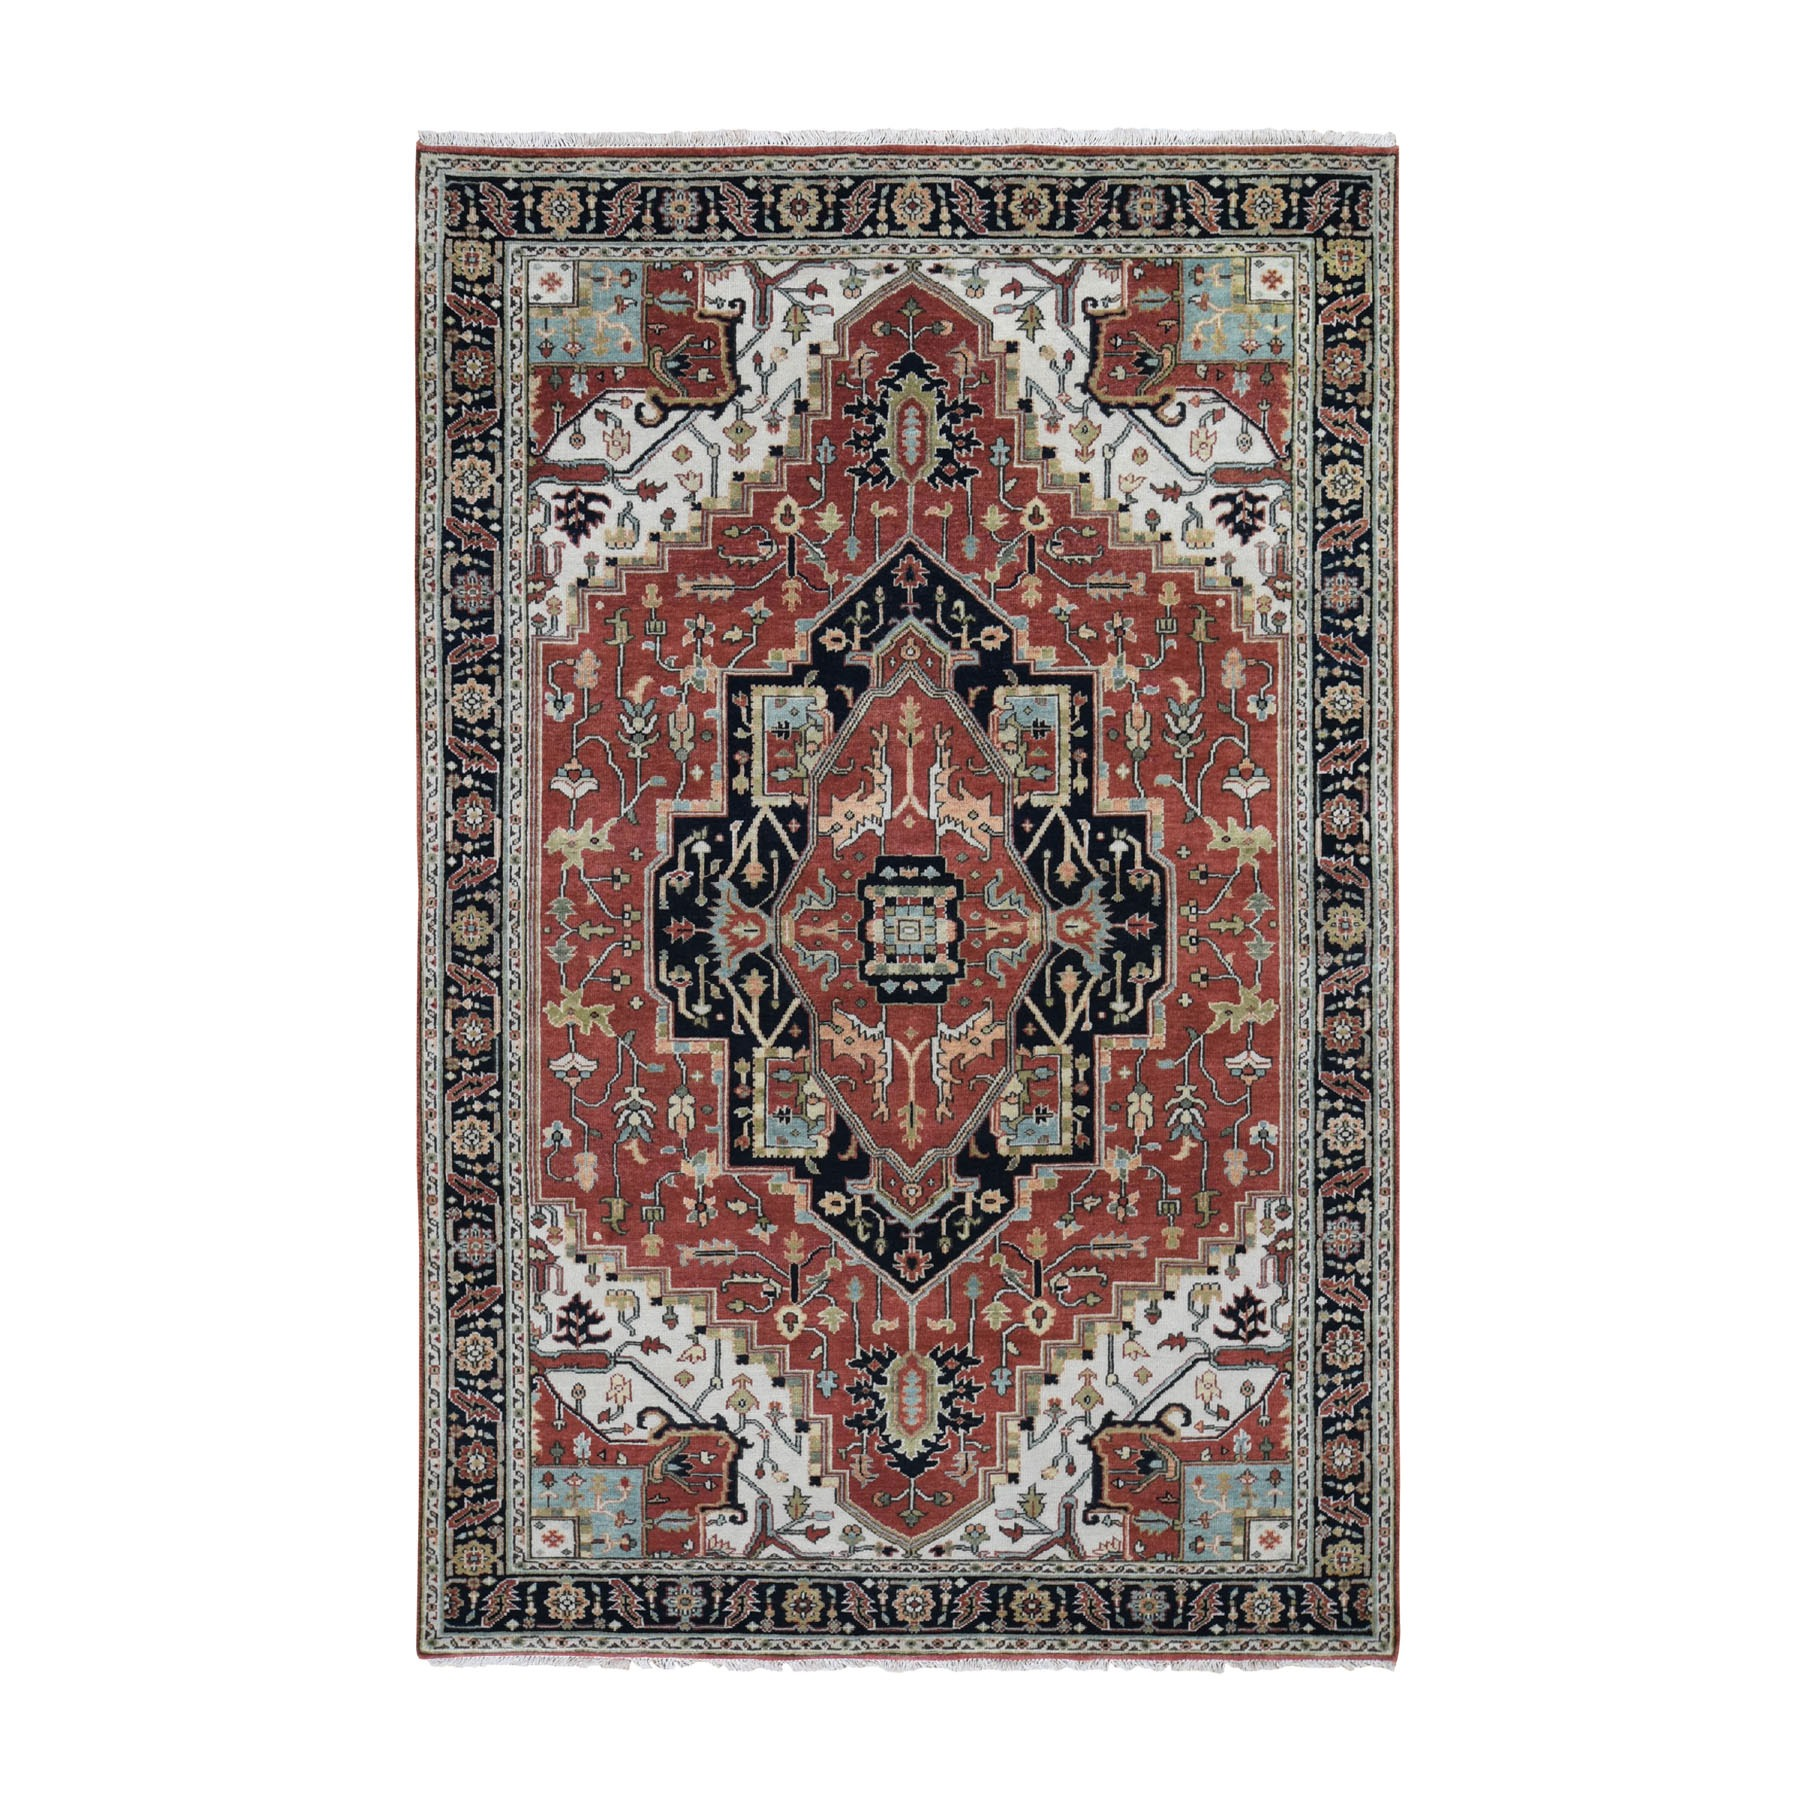 """6'x8'10"""" Red Heriz Revival Pure Wool Hand Knotted Oriental Rug 47963"""